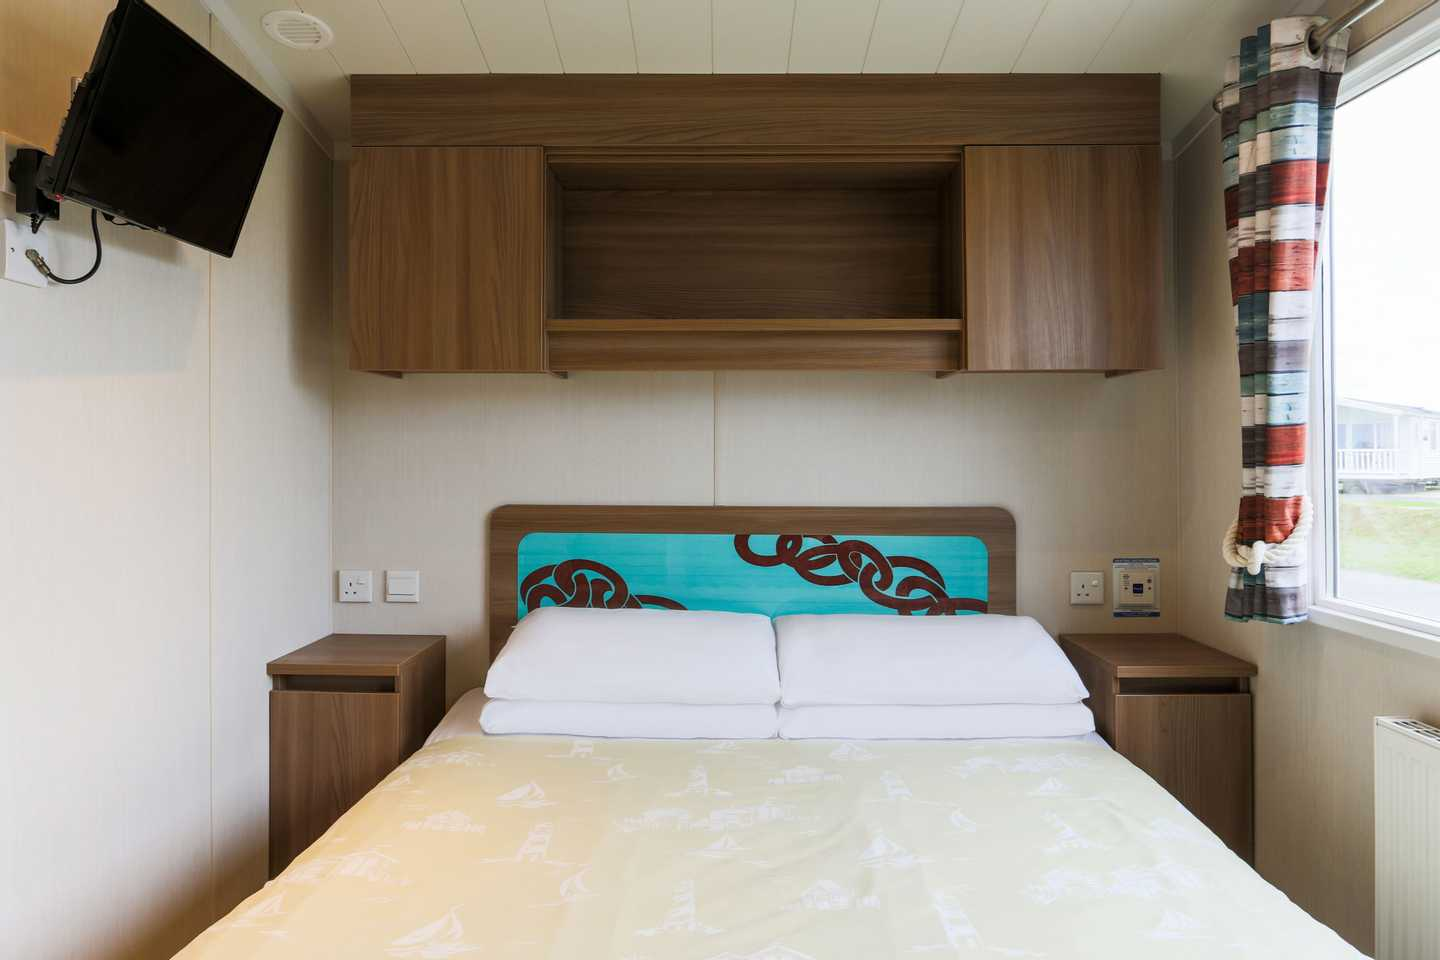 A Prestige master bedroom with double bed, overhead storage and bedside cabinets